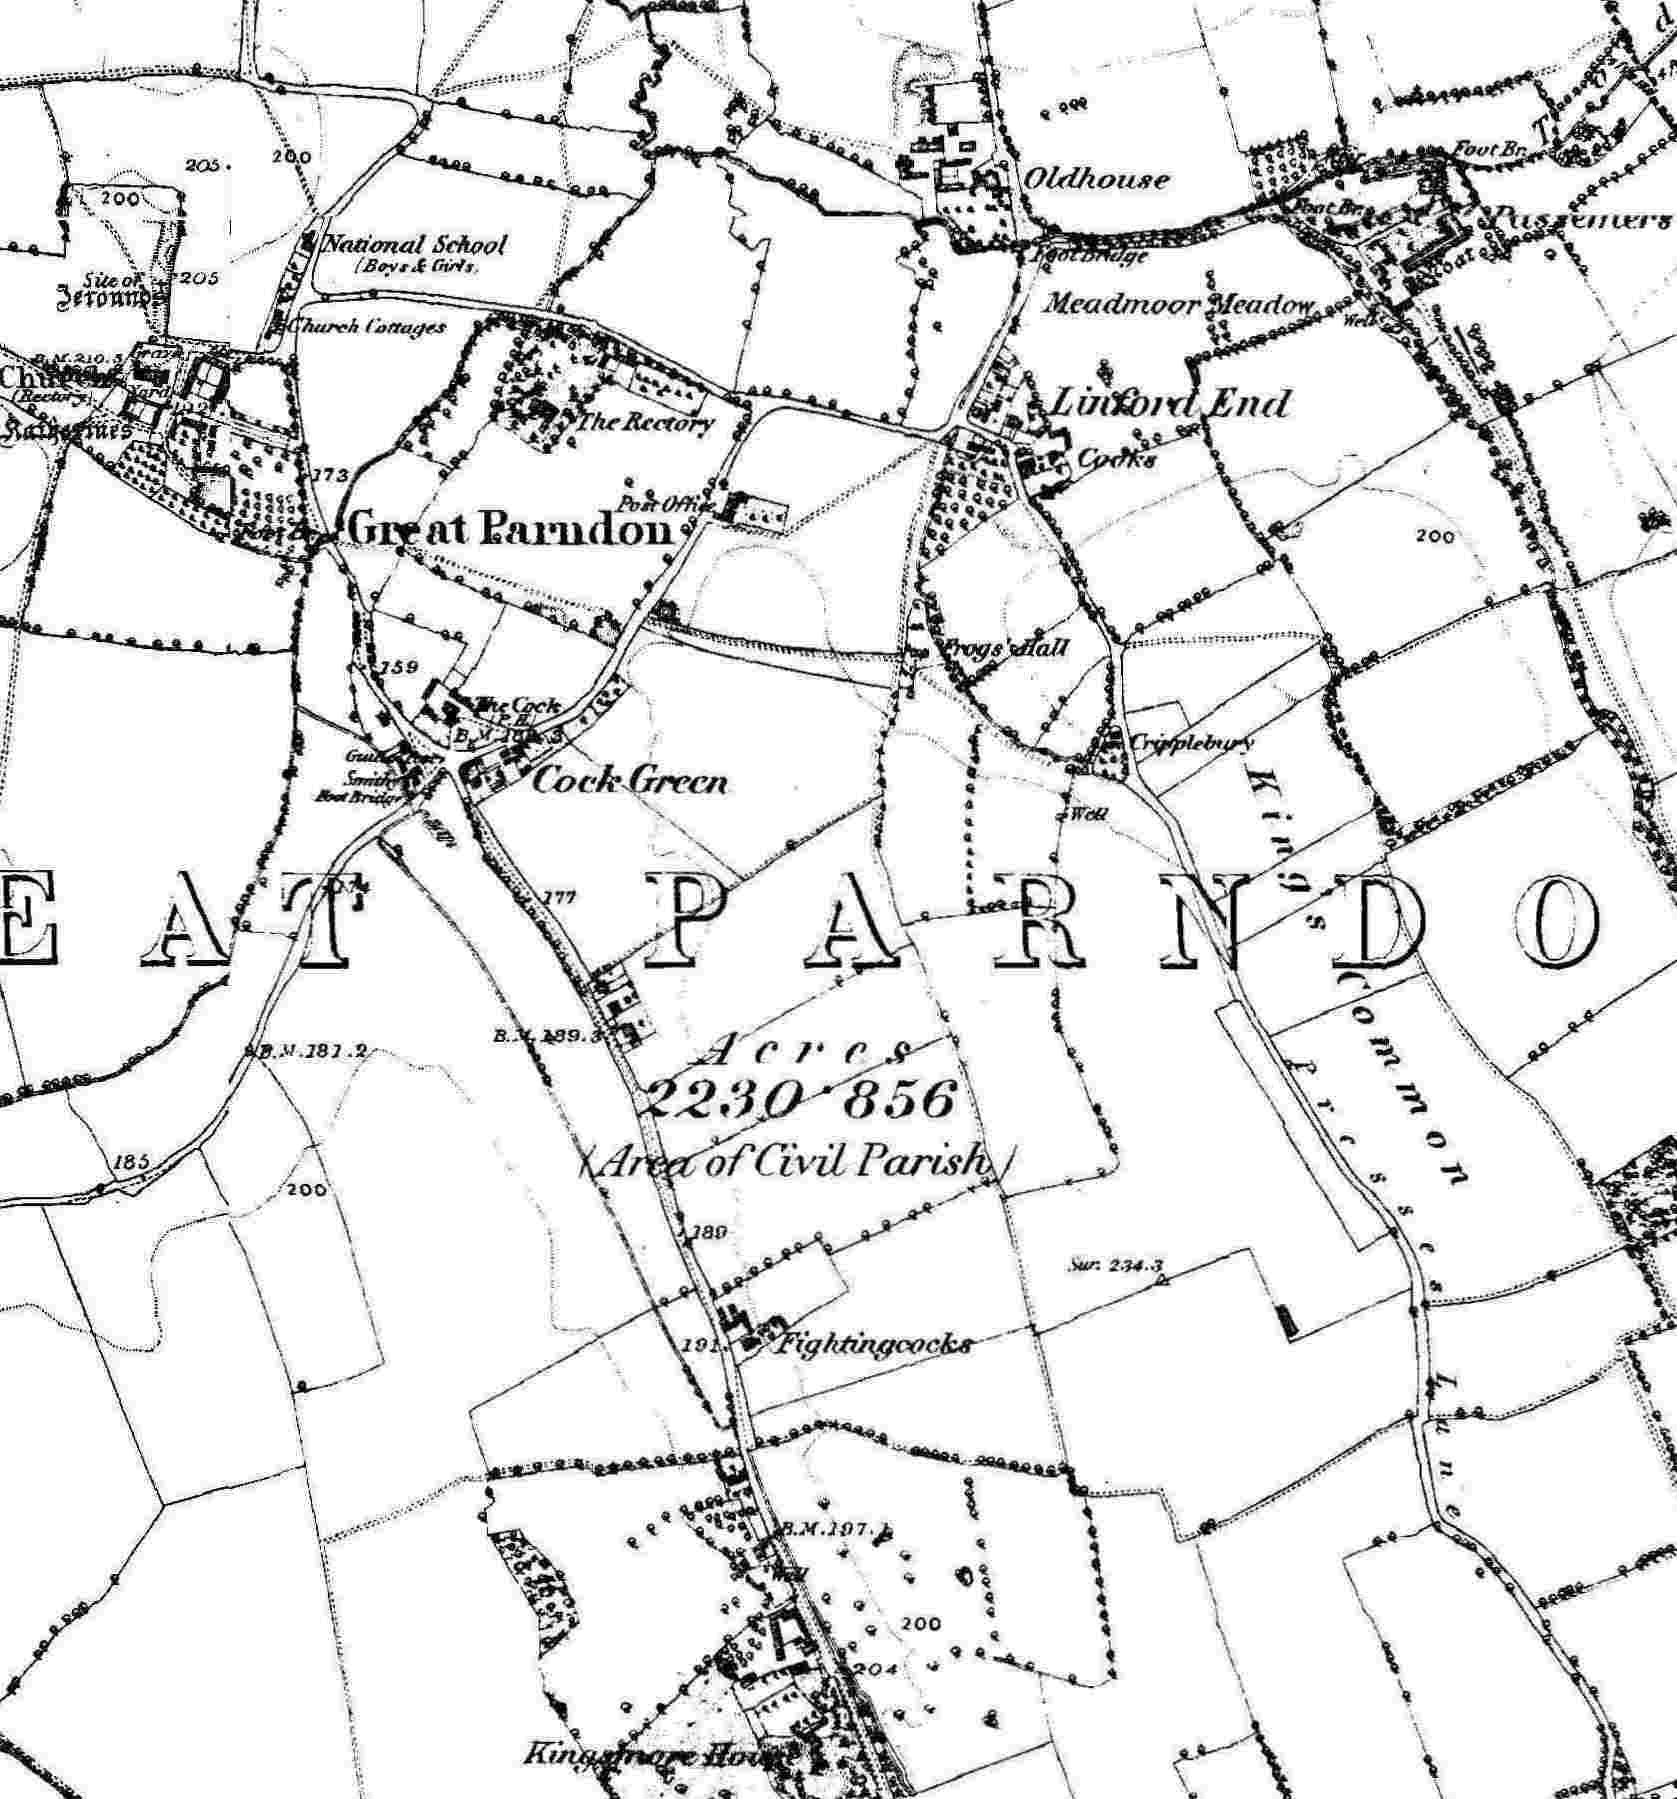 Map of Great Parndon Area circa 1884